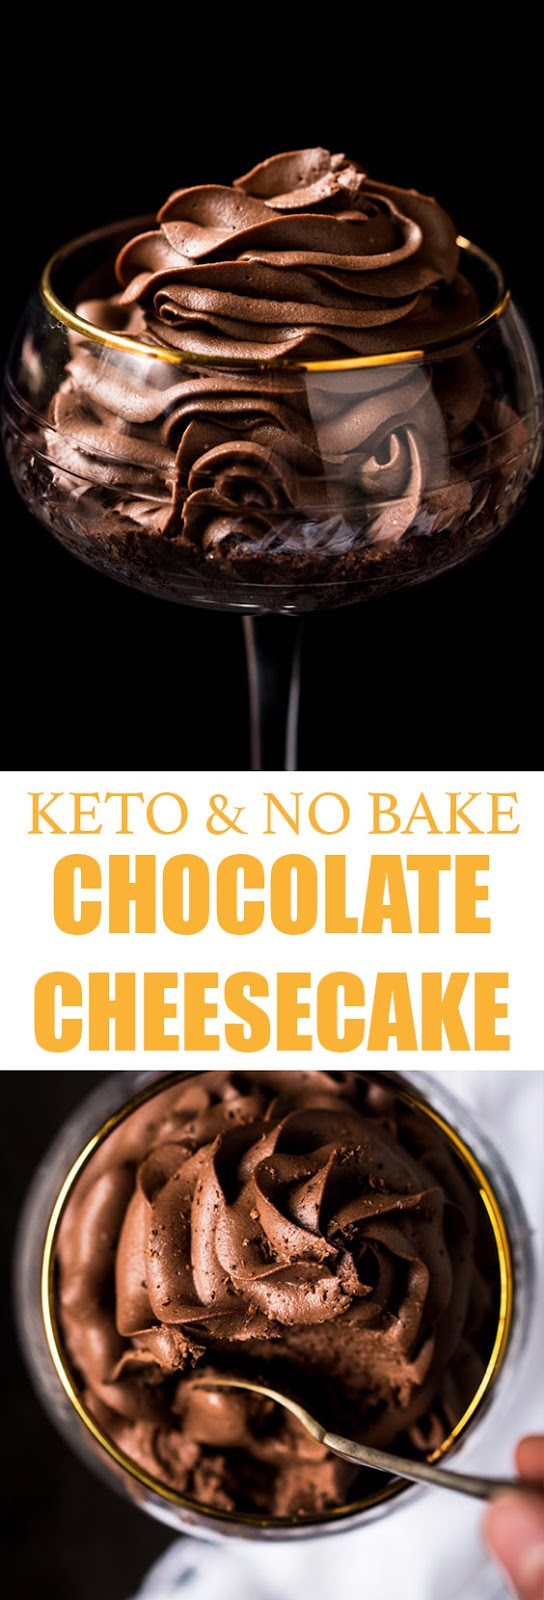 No Bake Chocolate Cheesecake (Gluten Free & Keto)